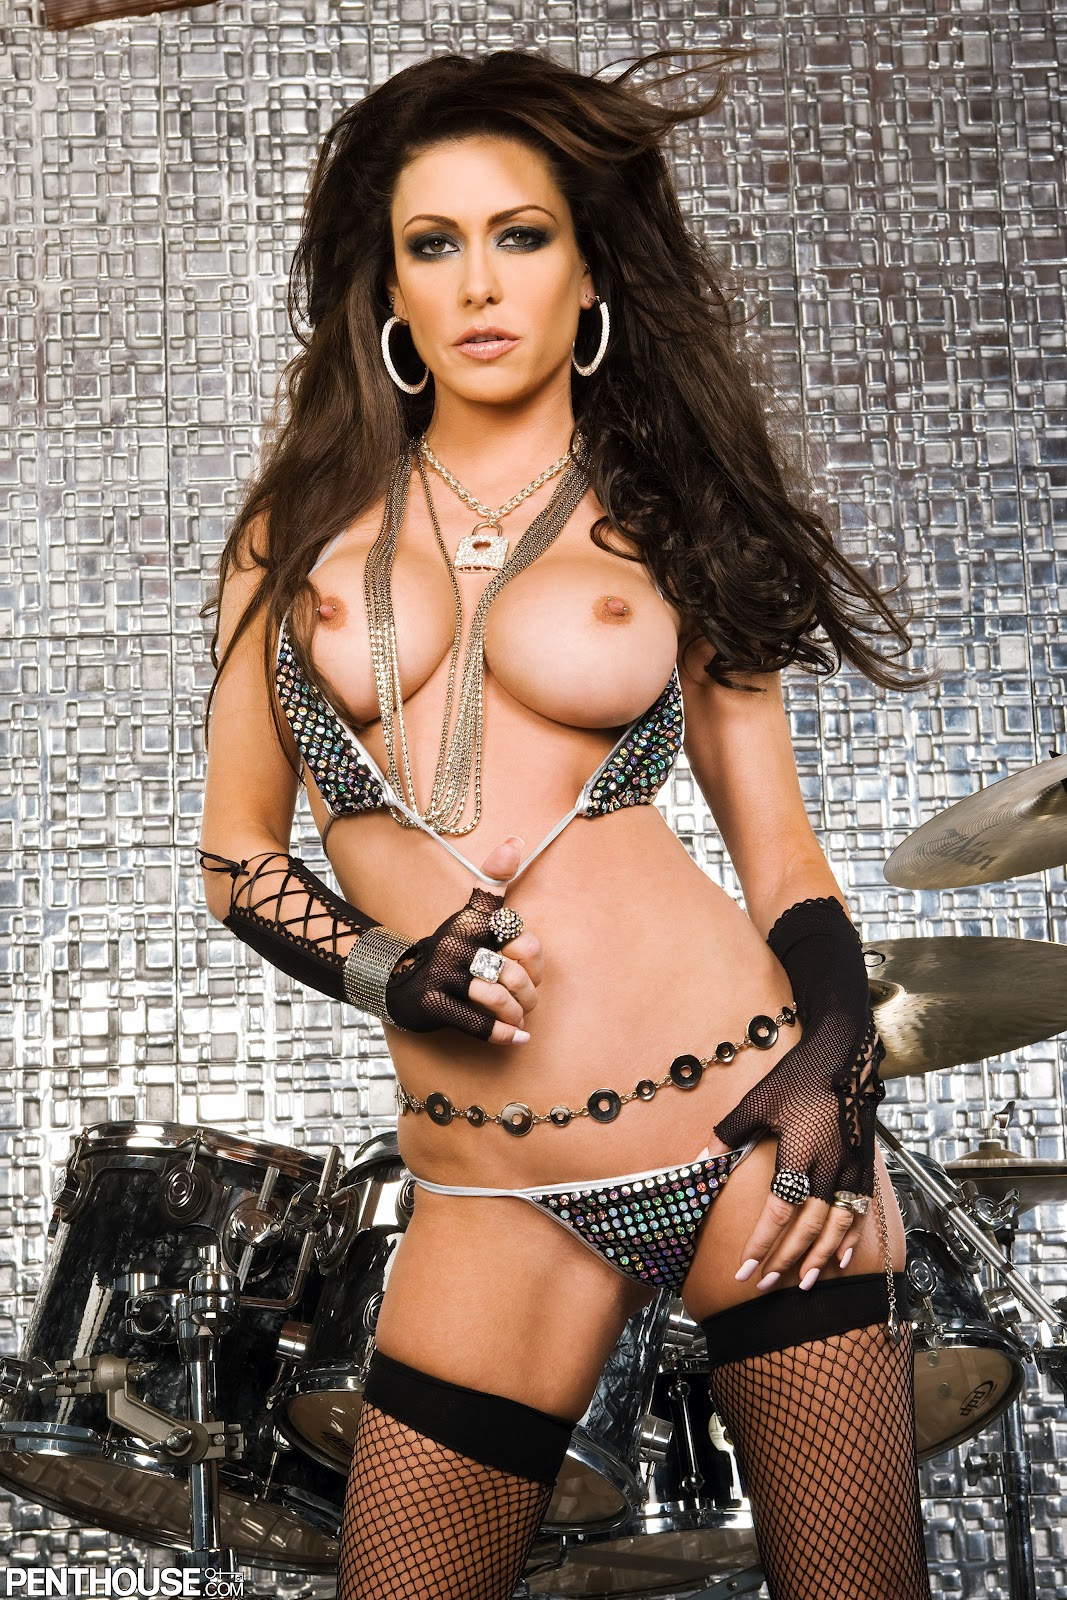 Jessica jaymes video